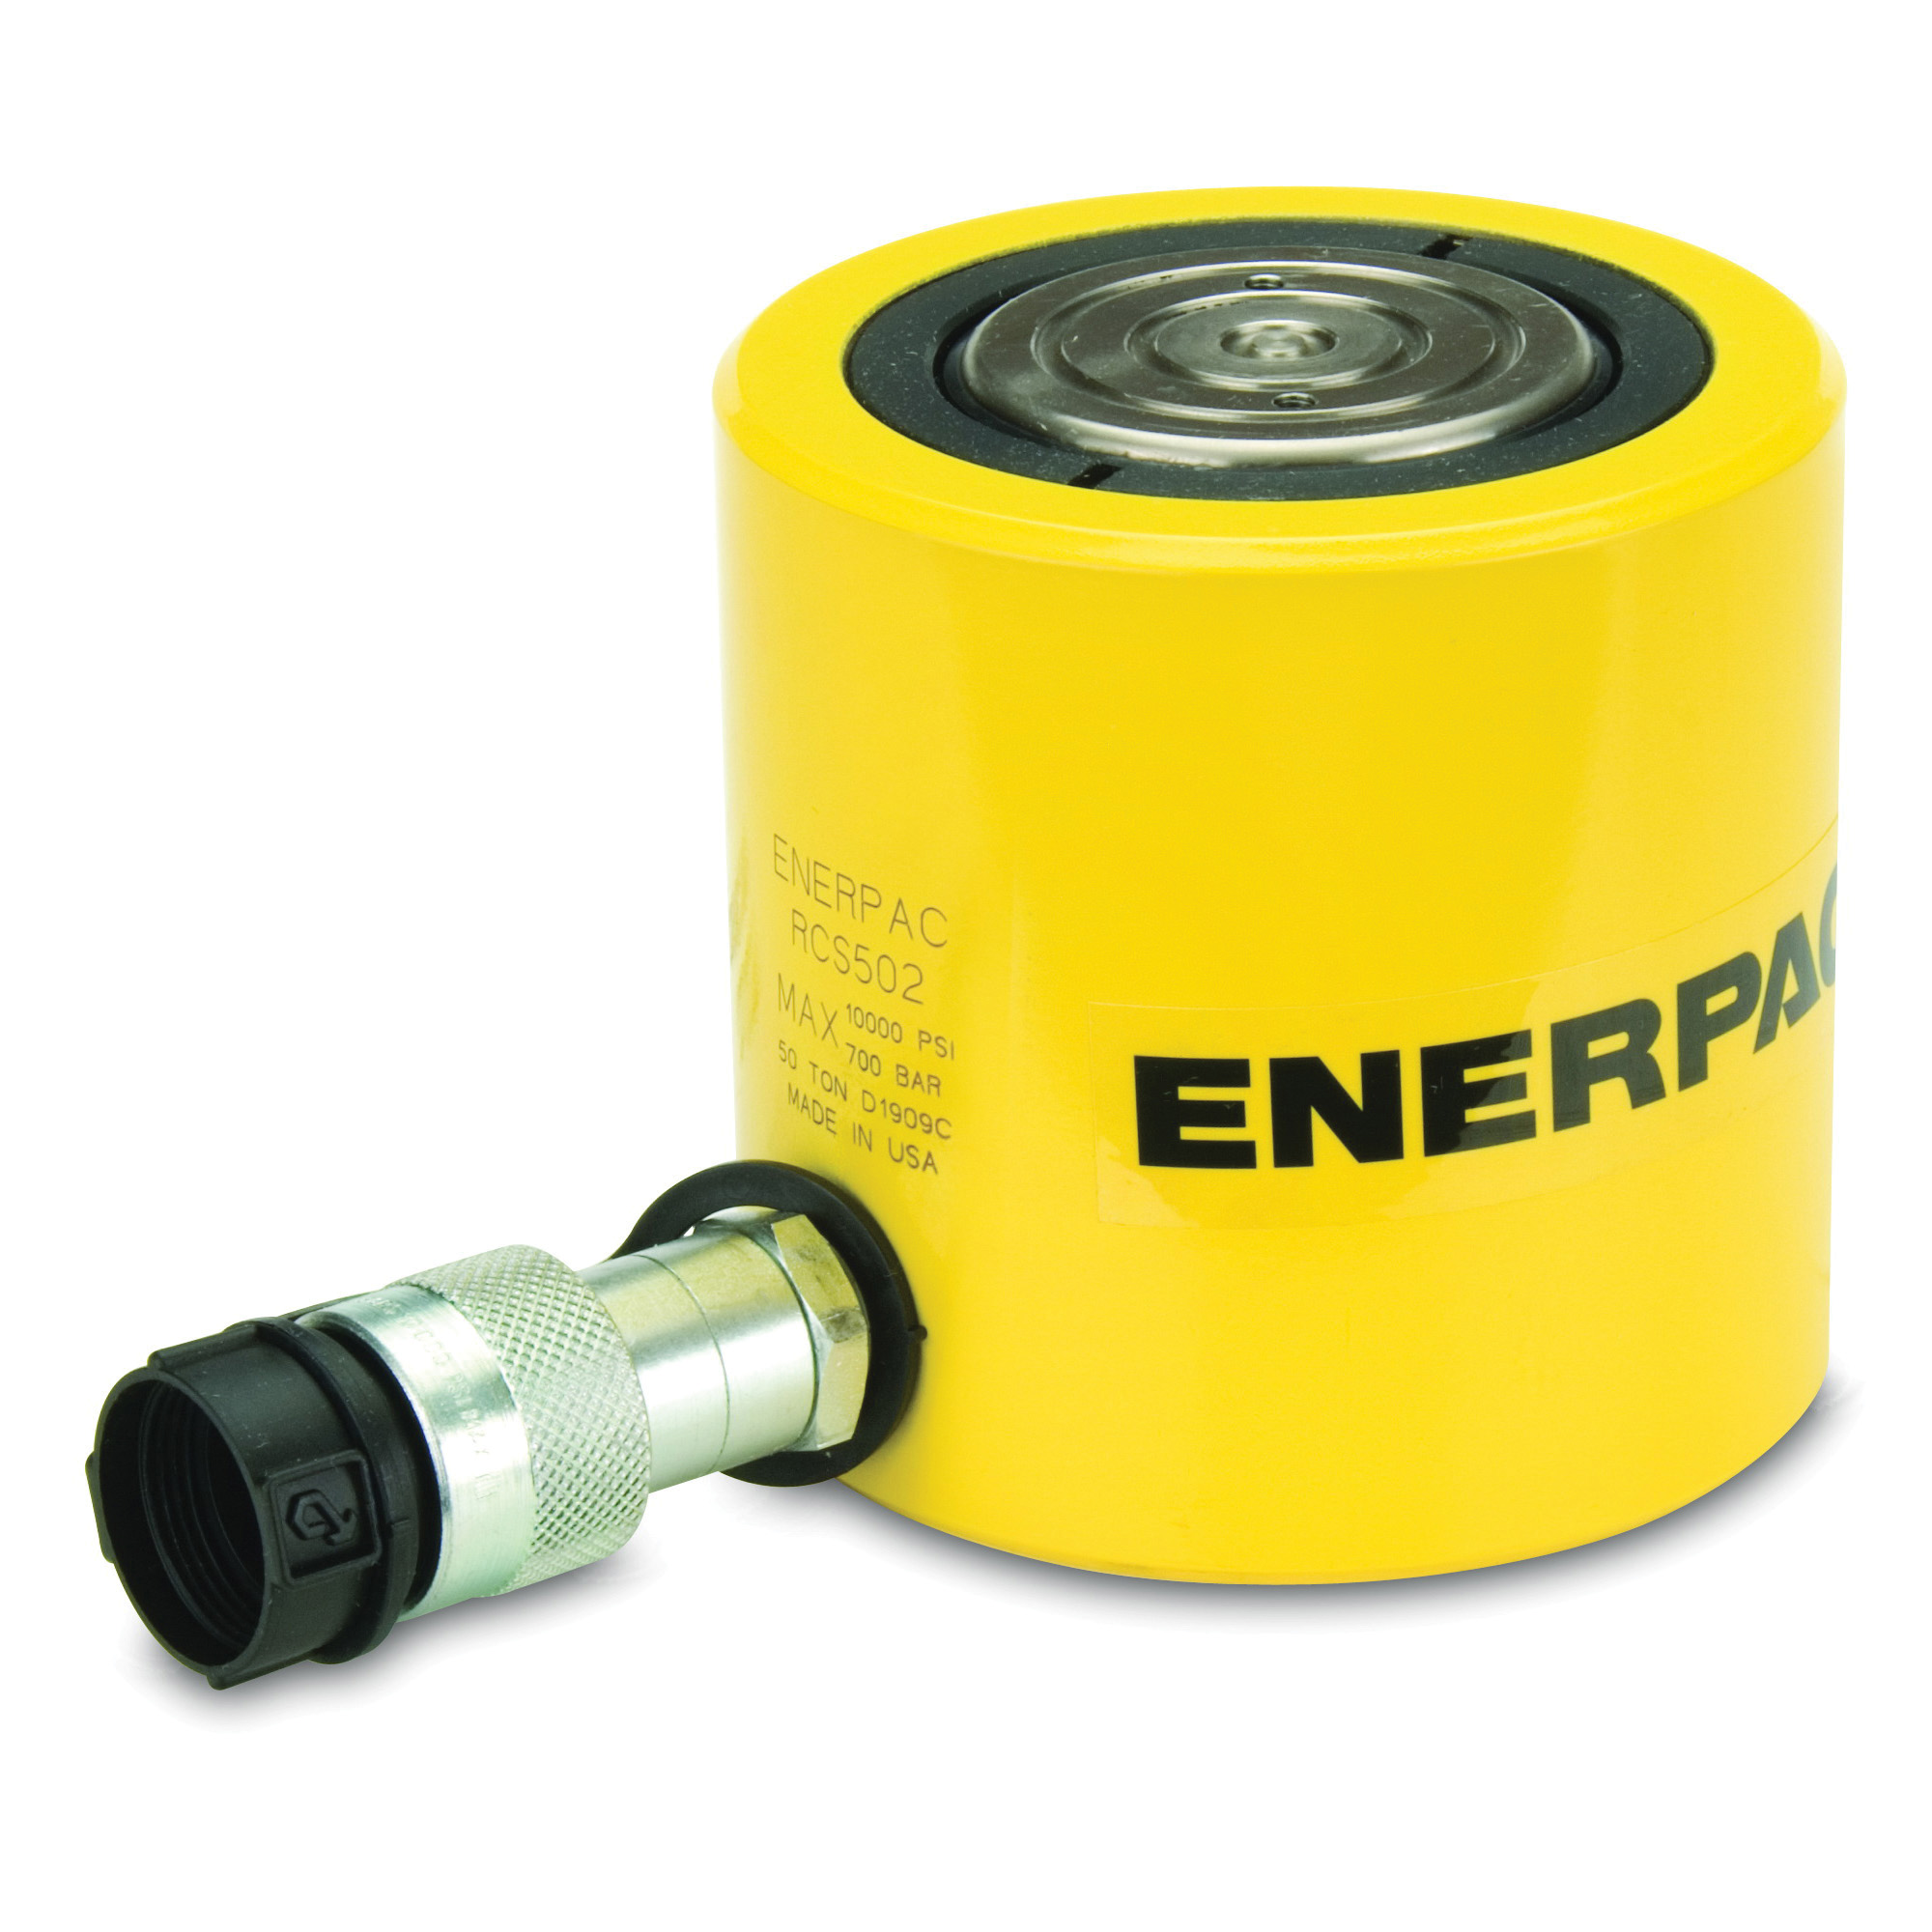 Enerpac® Flat-Jac® RCS-201 Low Height Single Acting Spring Return Hydraulic Cylinder, 20 ton Capacity, 2.38 in Dia Bore, 1-3/4 in L Stroke, 3.88 in H Retract, 2 in Dia Rod, 10000 psi